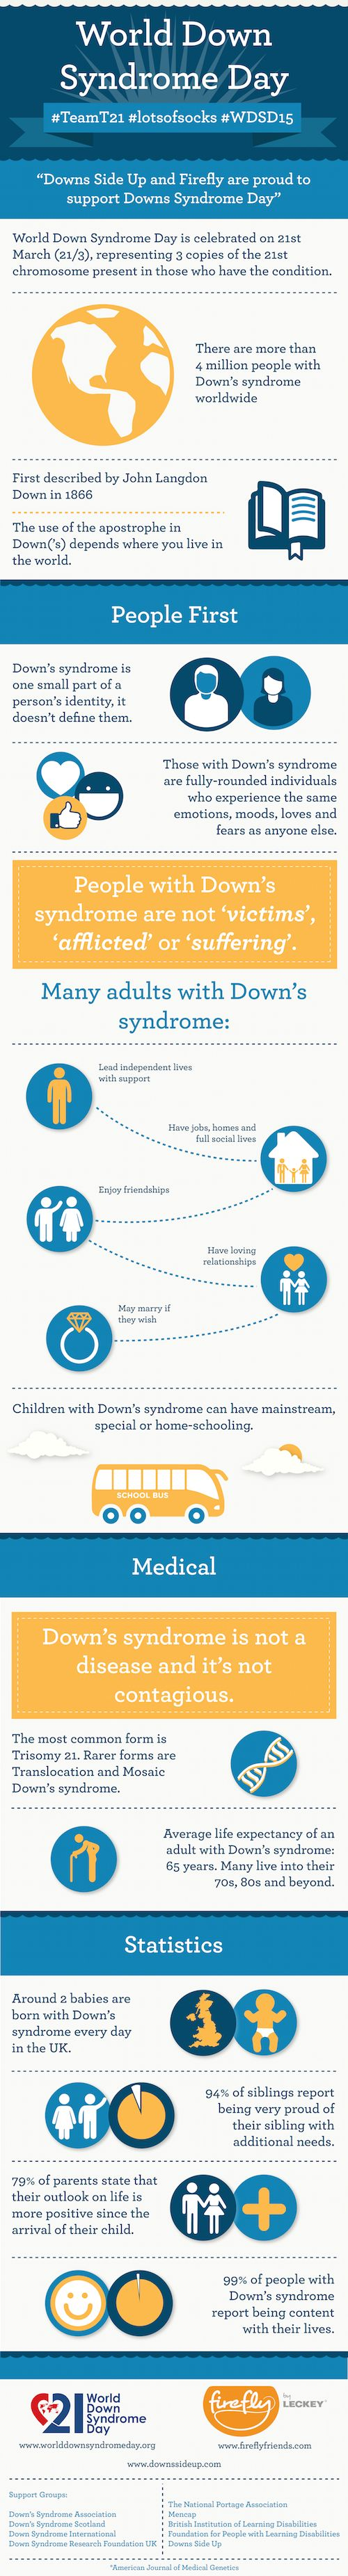 World Down Syndrome Day 2015 and an infographic of facts compiled by firefly by Leckey and Downs Side Up #WDSD15 #WDSD2015